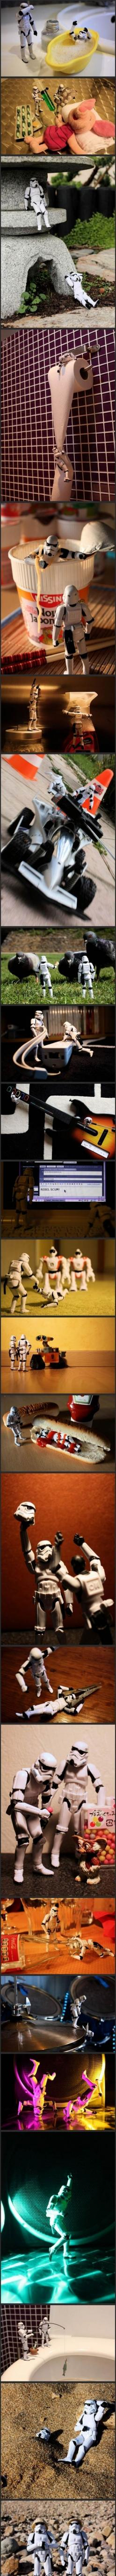 Busy Day for the StromTroopers: Storm Troopers, Life, Stuff, Funny, Star Wars, Stormtroopers, Storms, Starwars